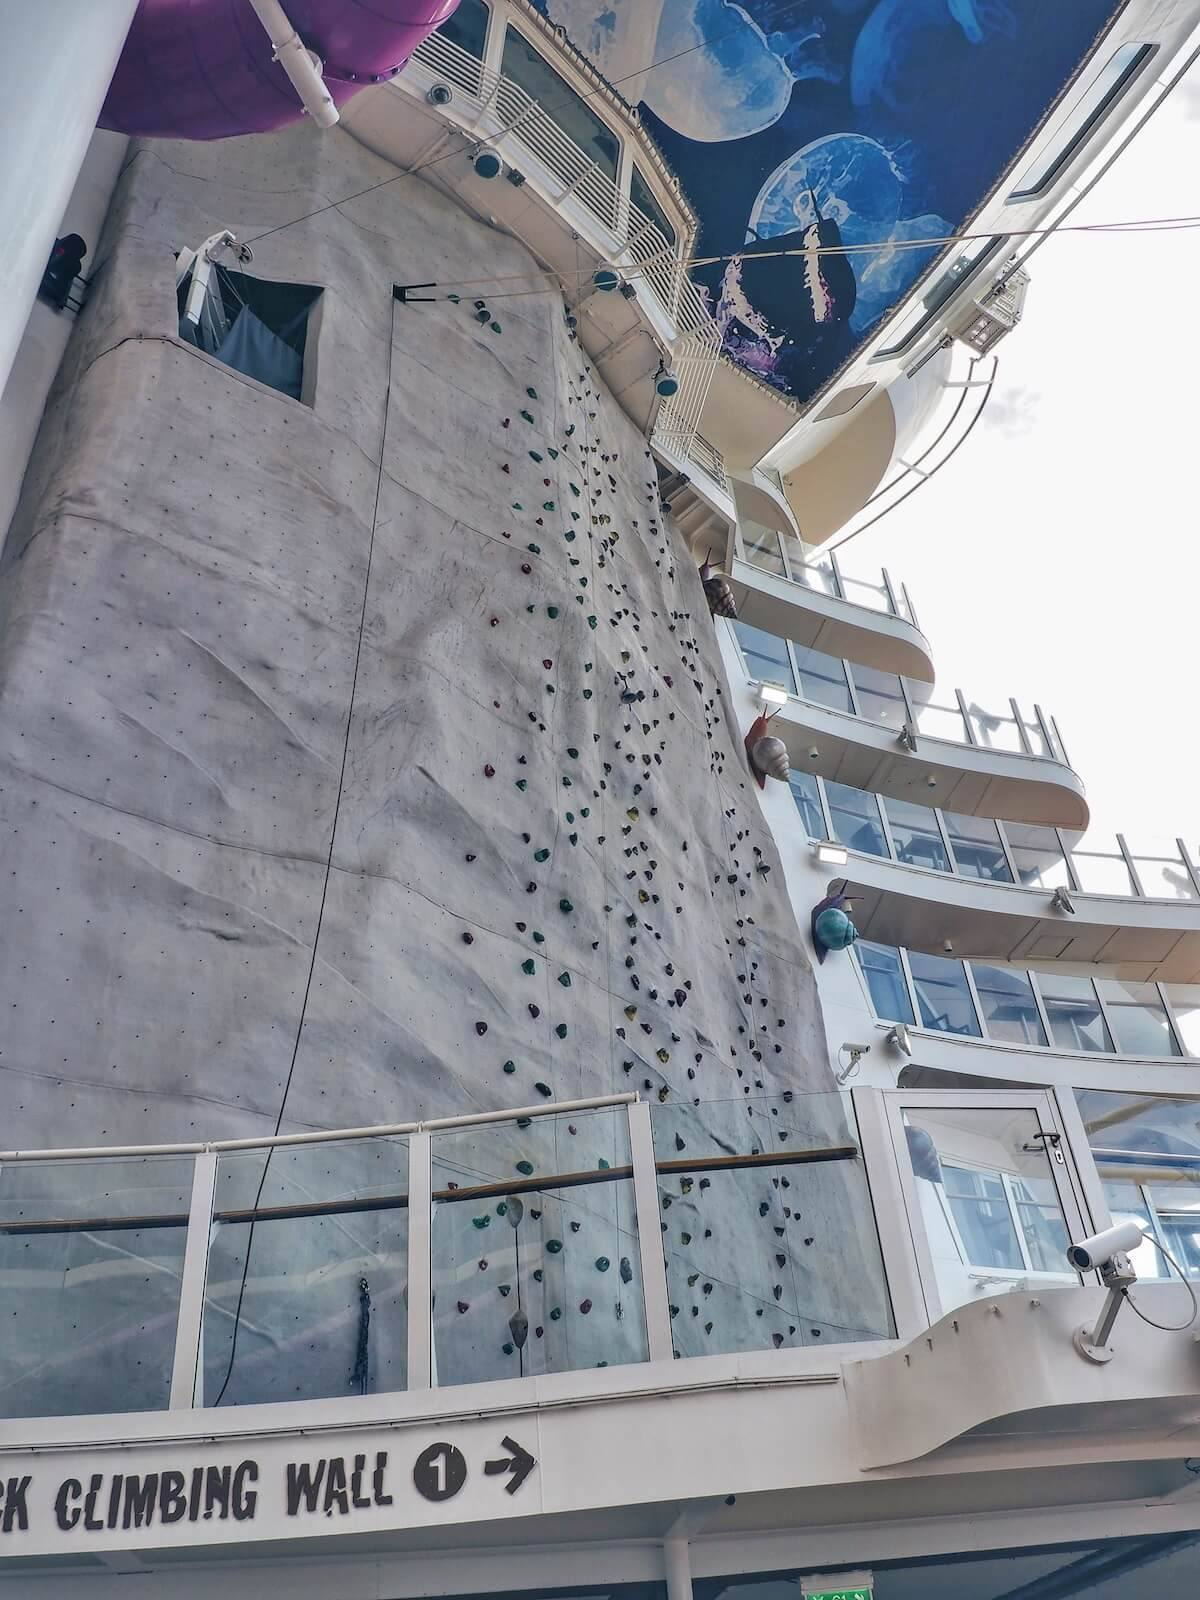 Climbing wall of the largest cruise ship